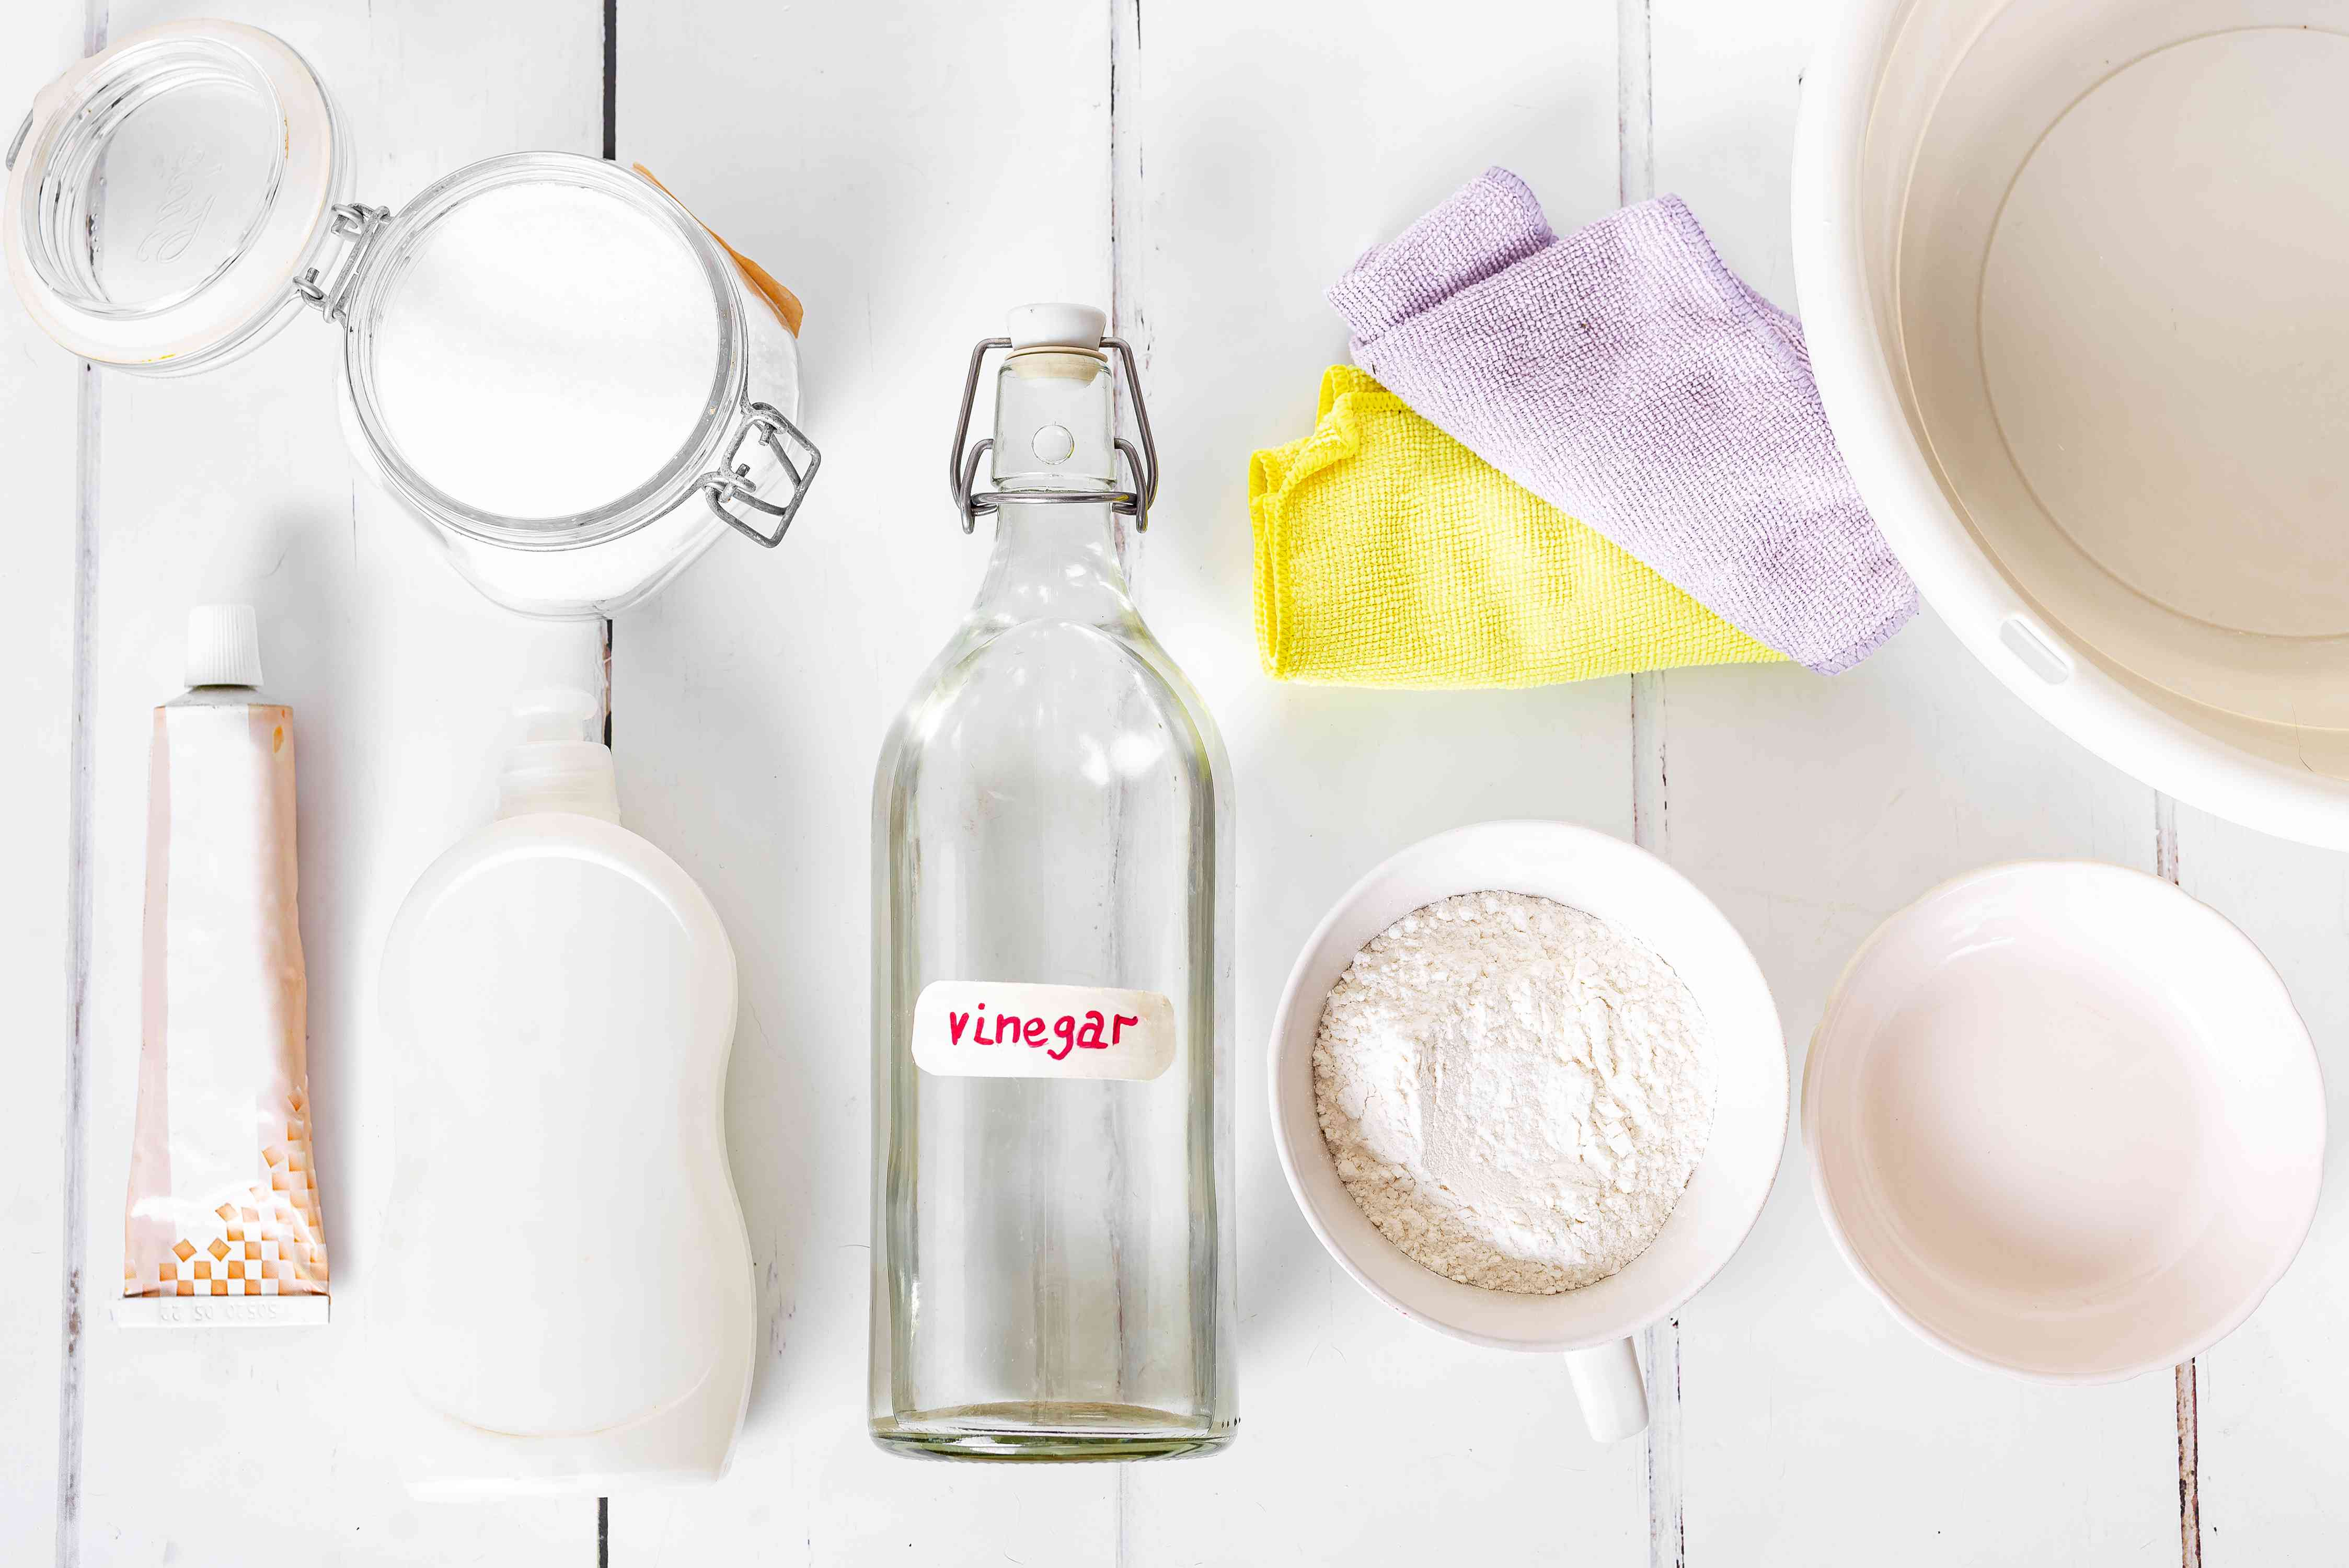 Materials and tools to clean pewter items on white wooden surface